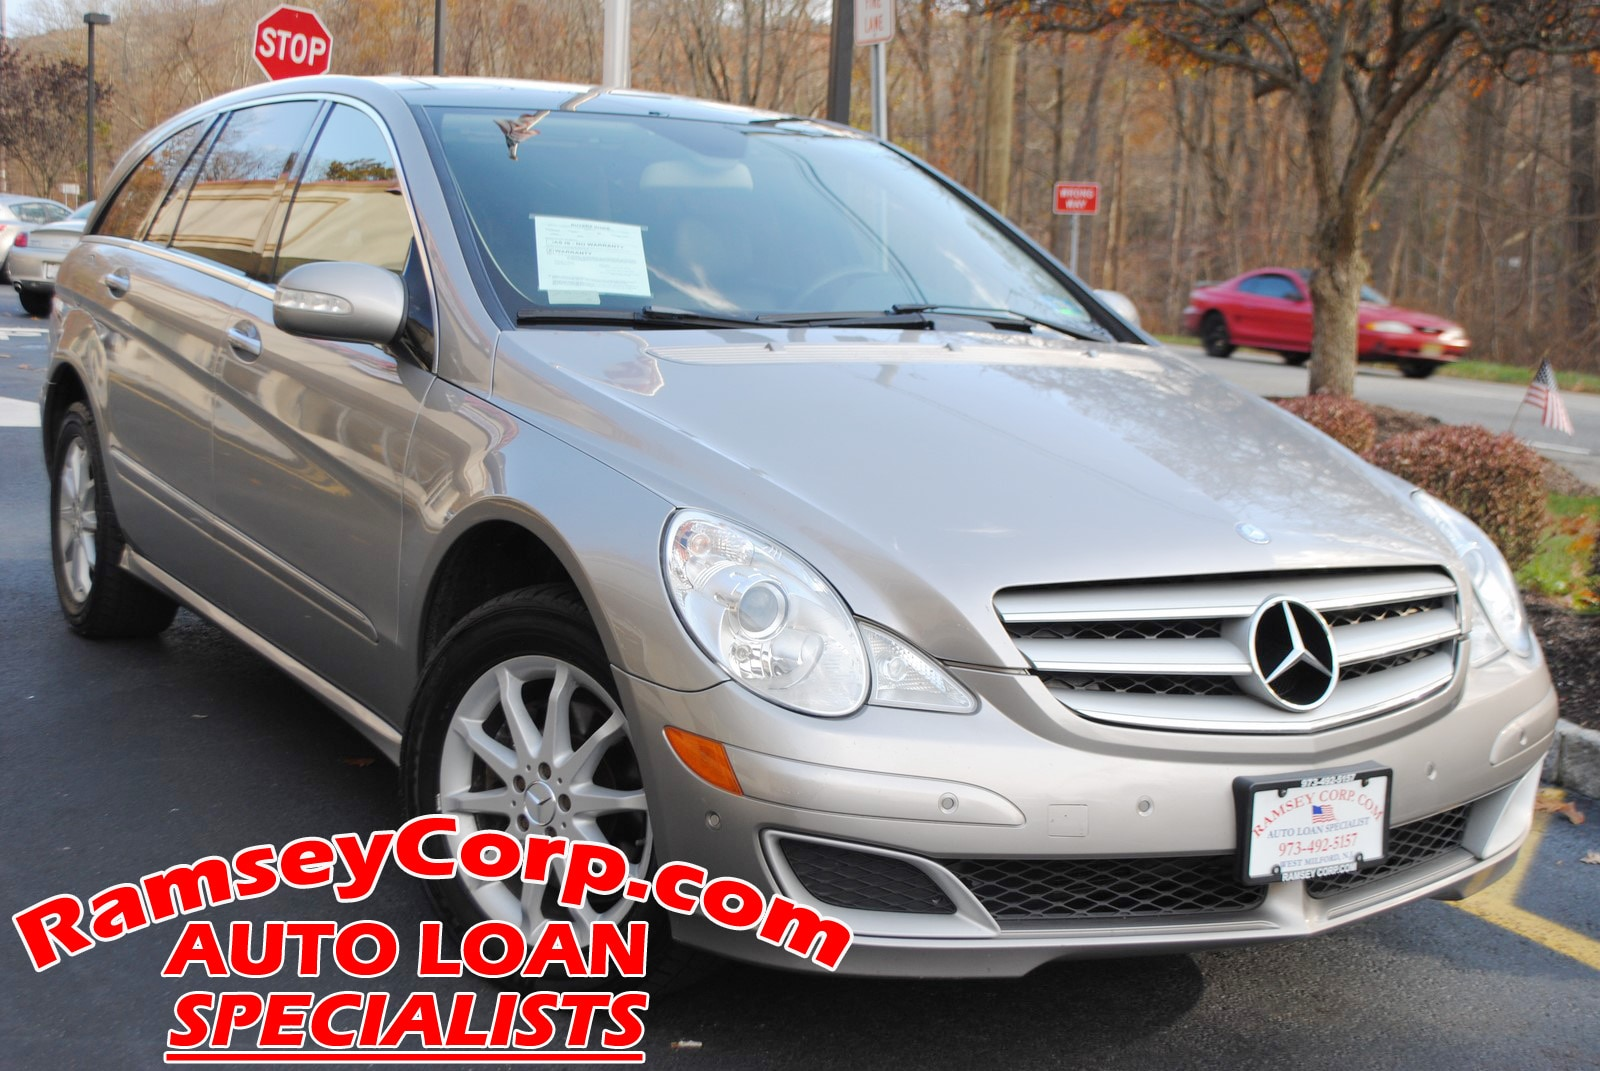 used 2007 mercedes benz r class for sale west milford nj rh ramseycorp com Green 2007 Mercedes R350 Green 2007 Mercedes R350